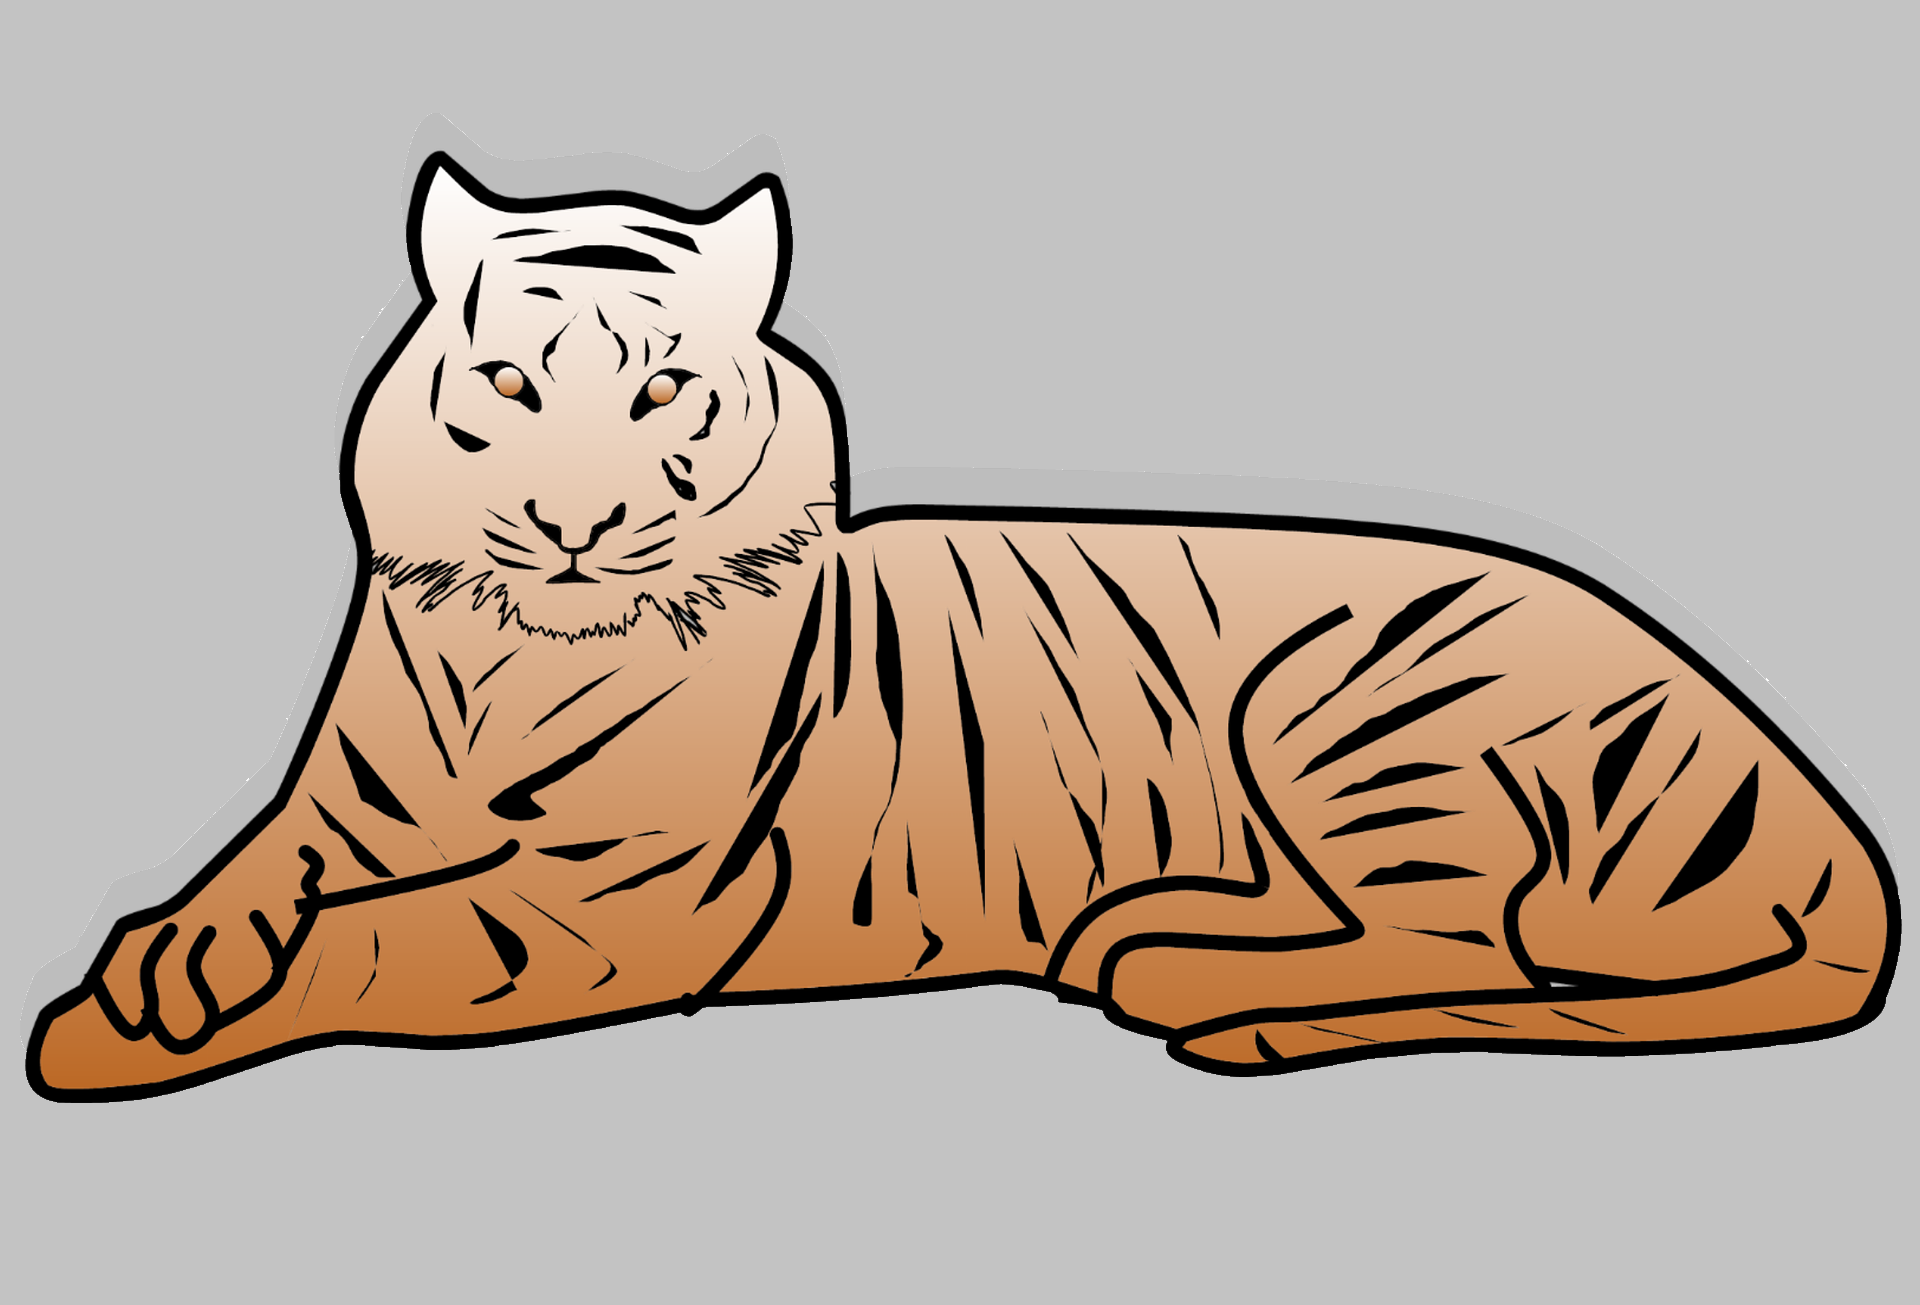 Free tiger clipart from Pixabay